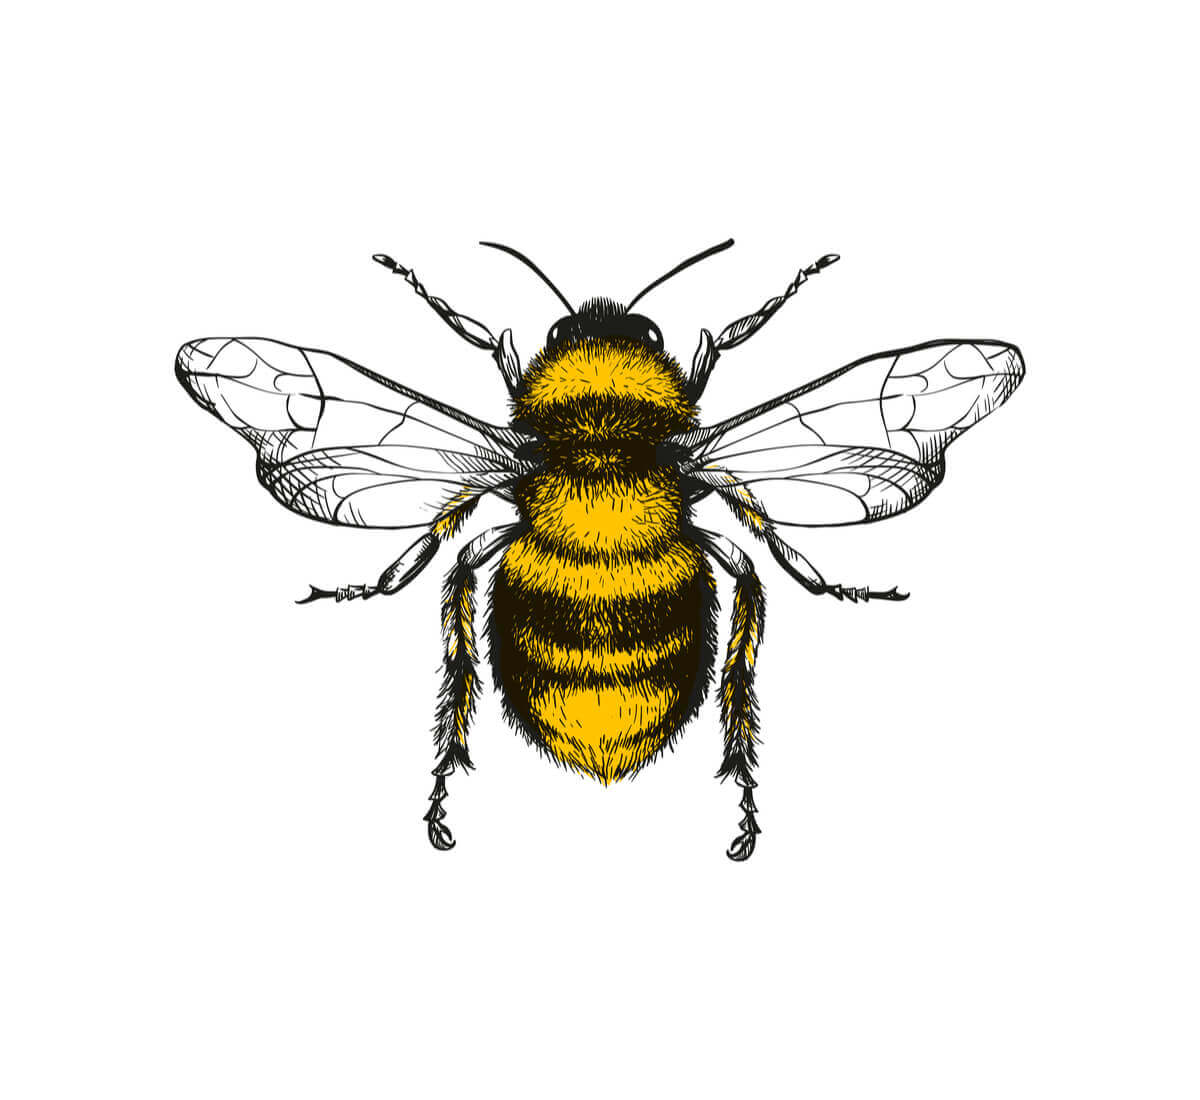 A drawing of a bee.